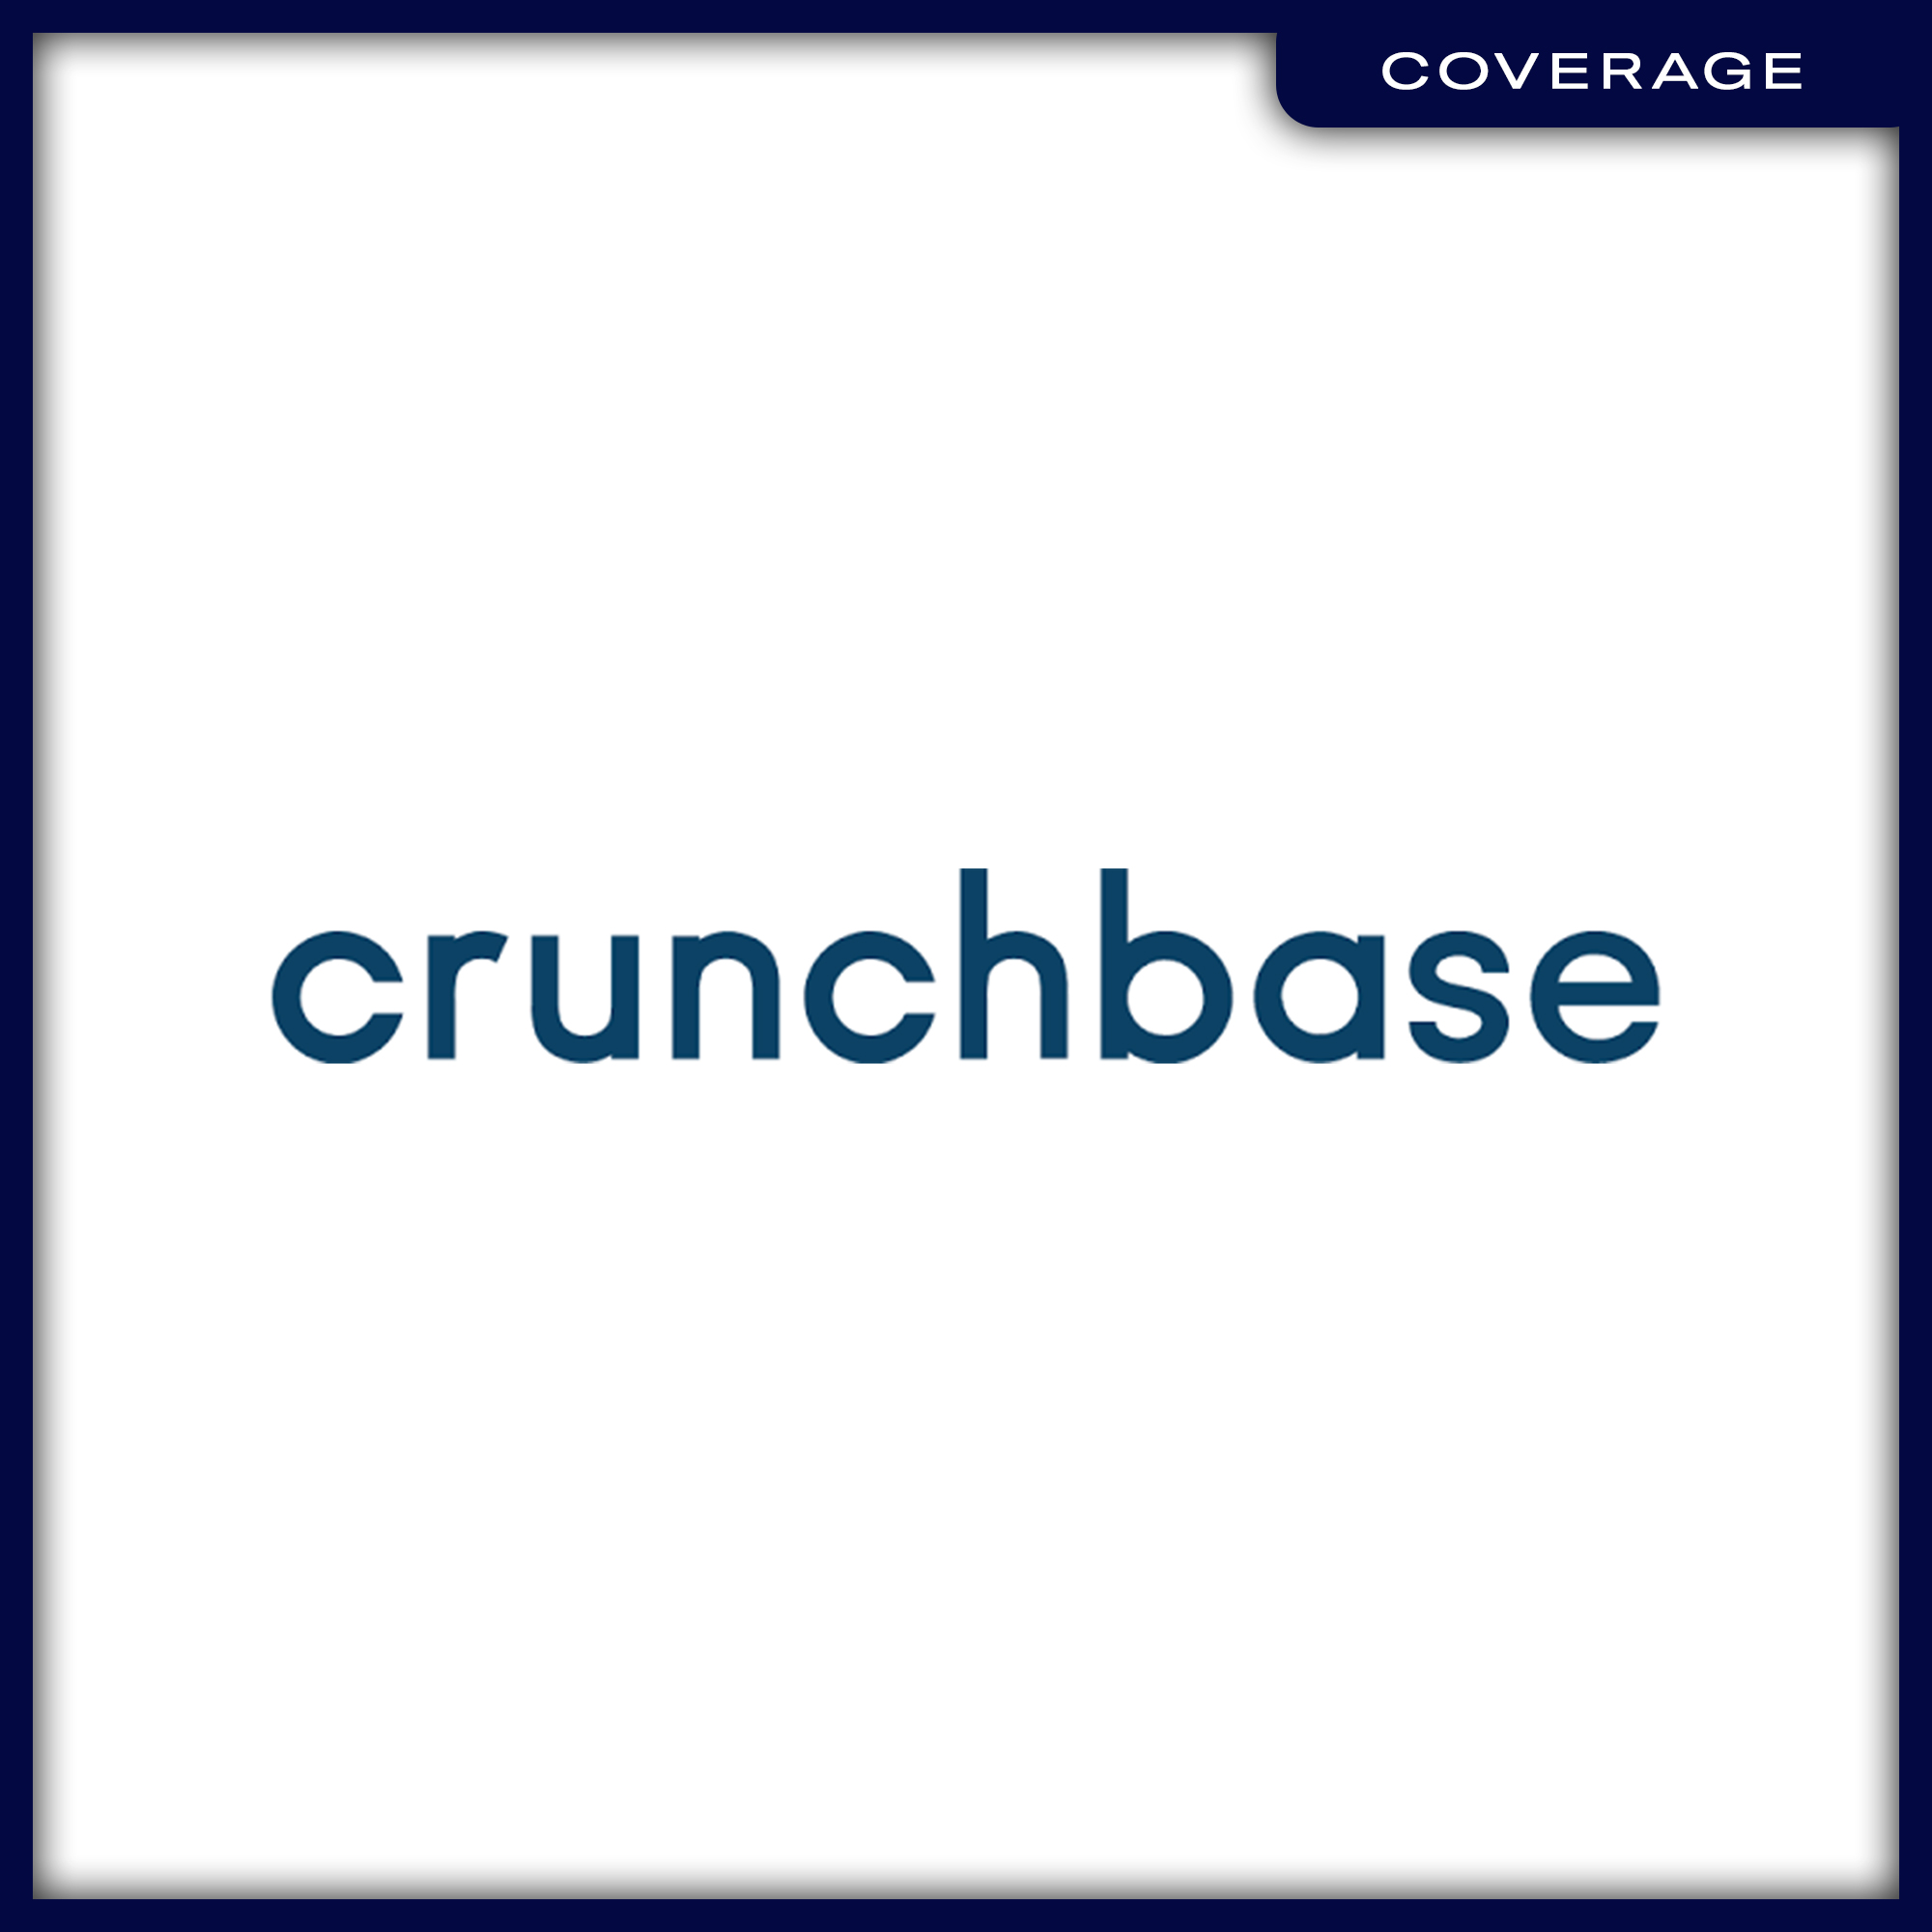 07-Coverage--Crunchbase--Passion-for-Podcasts--How-Lindsay-Tjepkema-is-Empowering-Brands-to-Rewrite-the-Content-